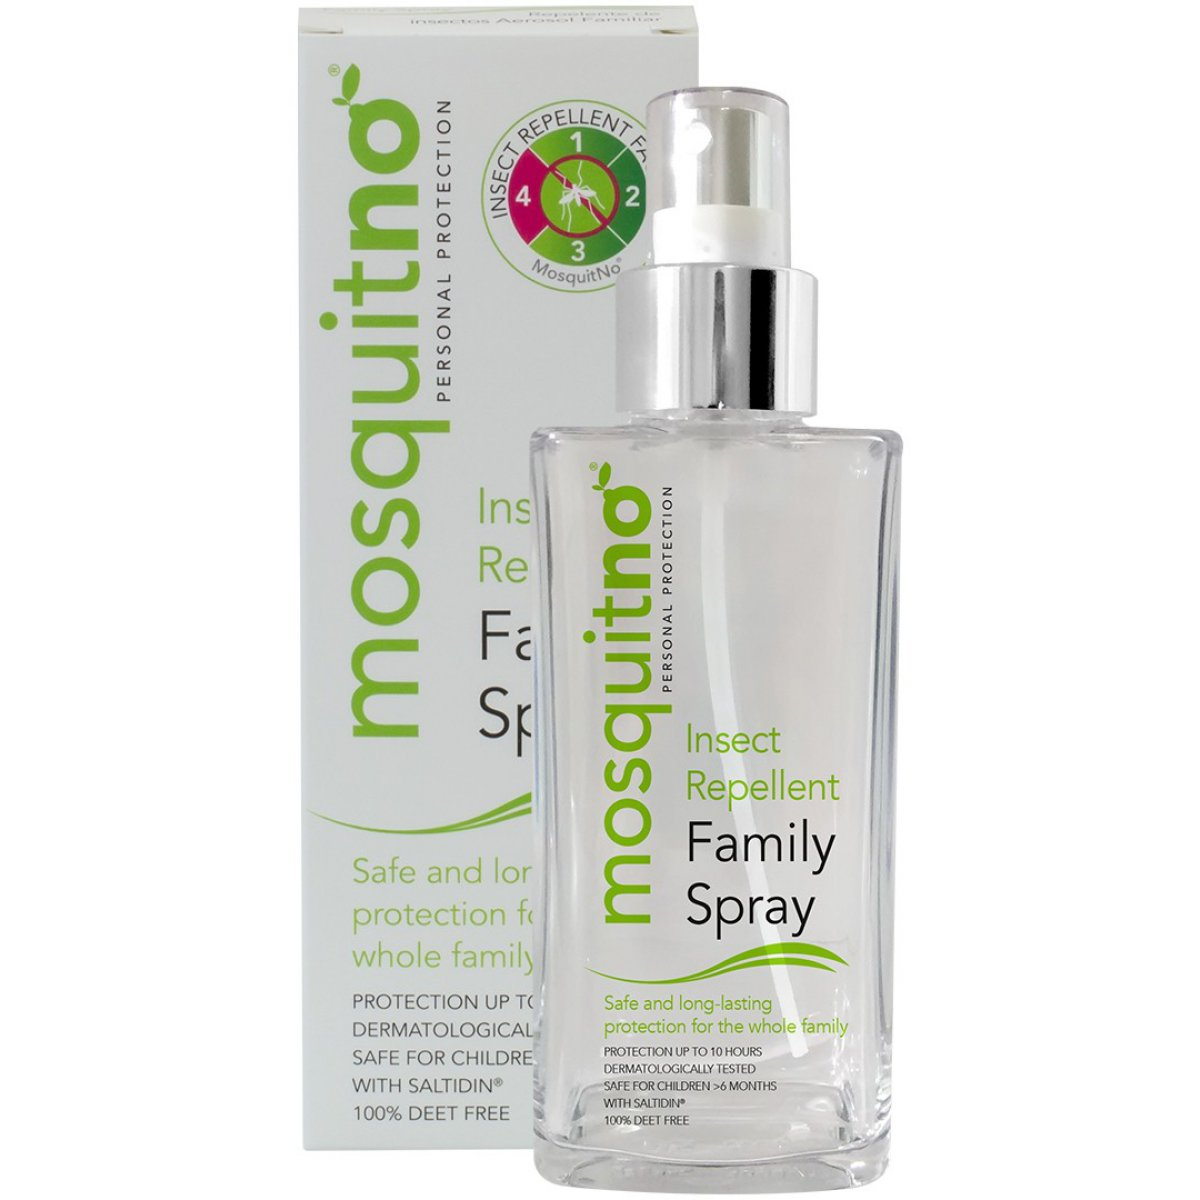 MosquitNo Insect Repellent Family Spray - 100 ml